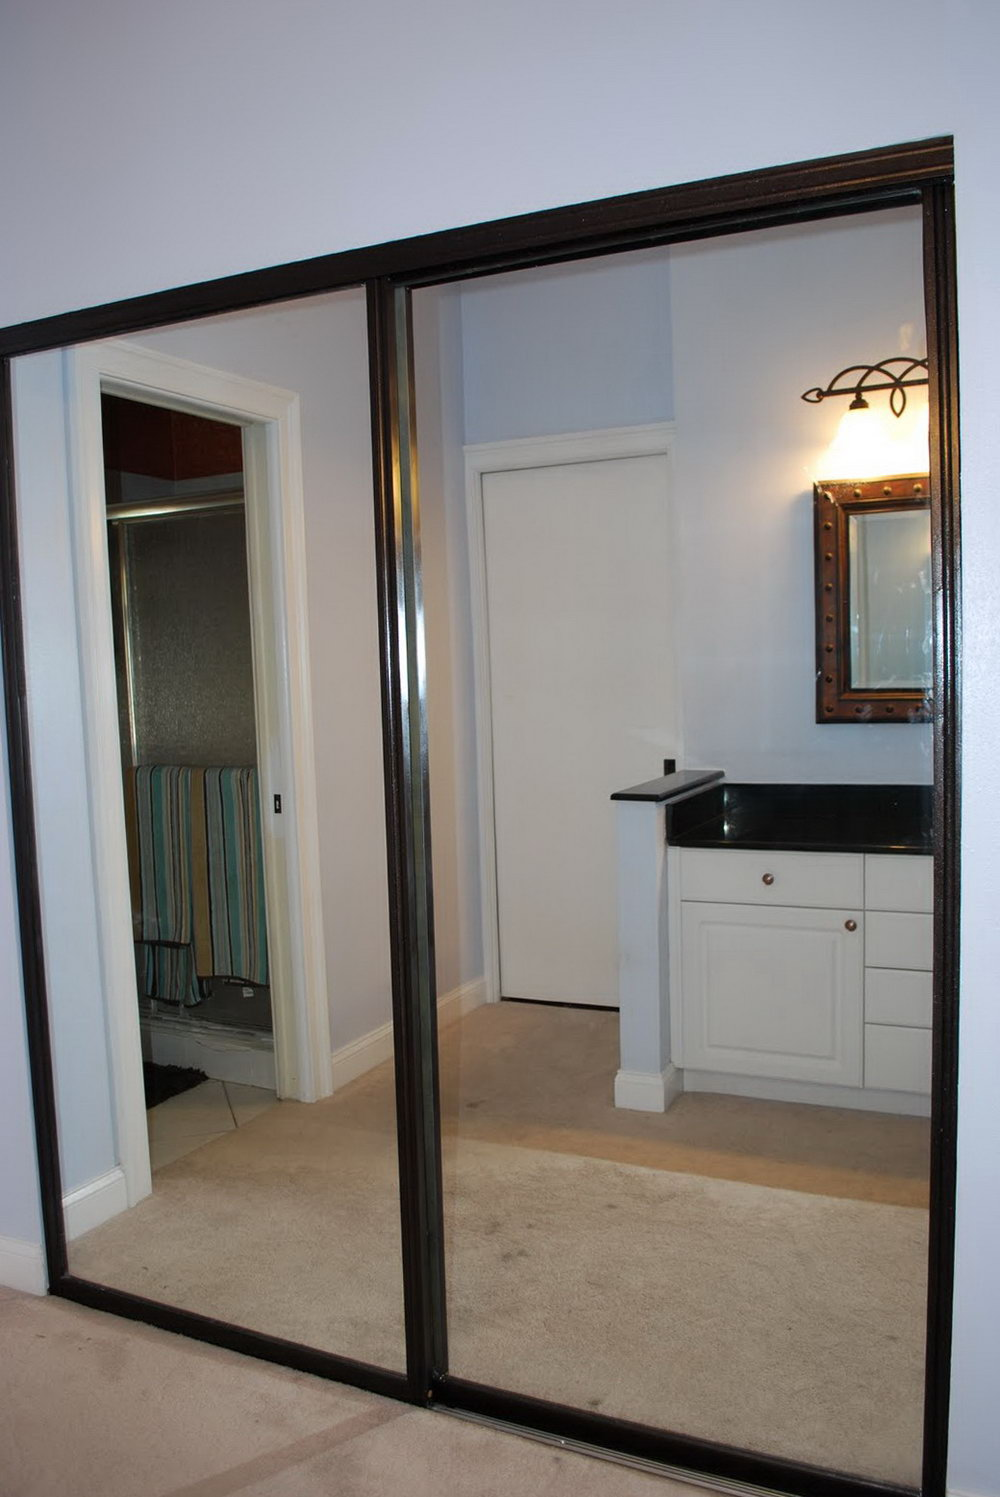 Mirrored closet doors menards a simple upgrade to any for Exterior closet doors